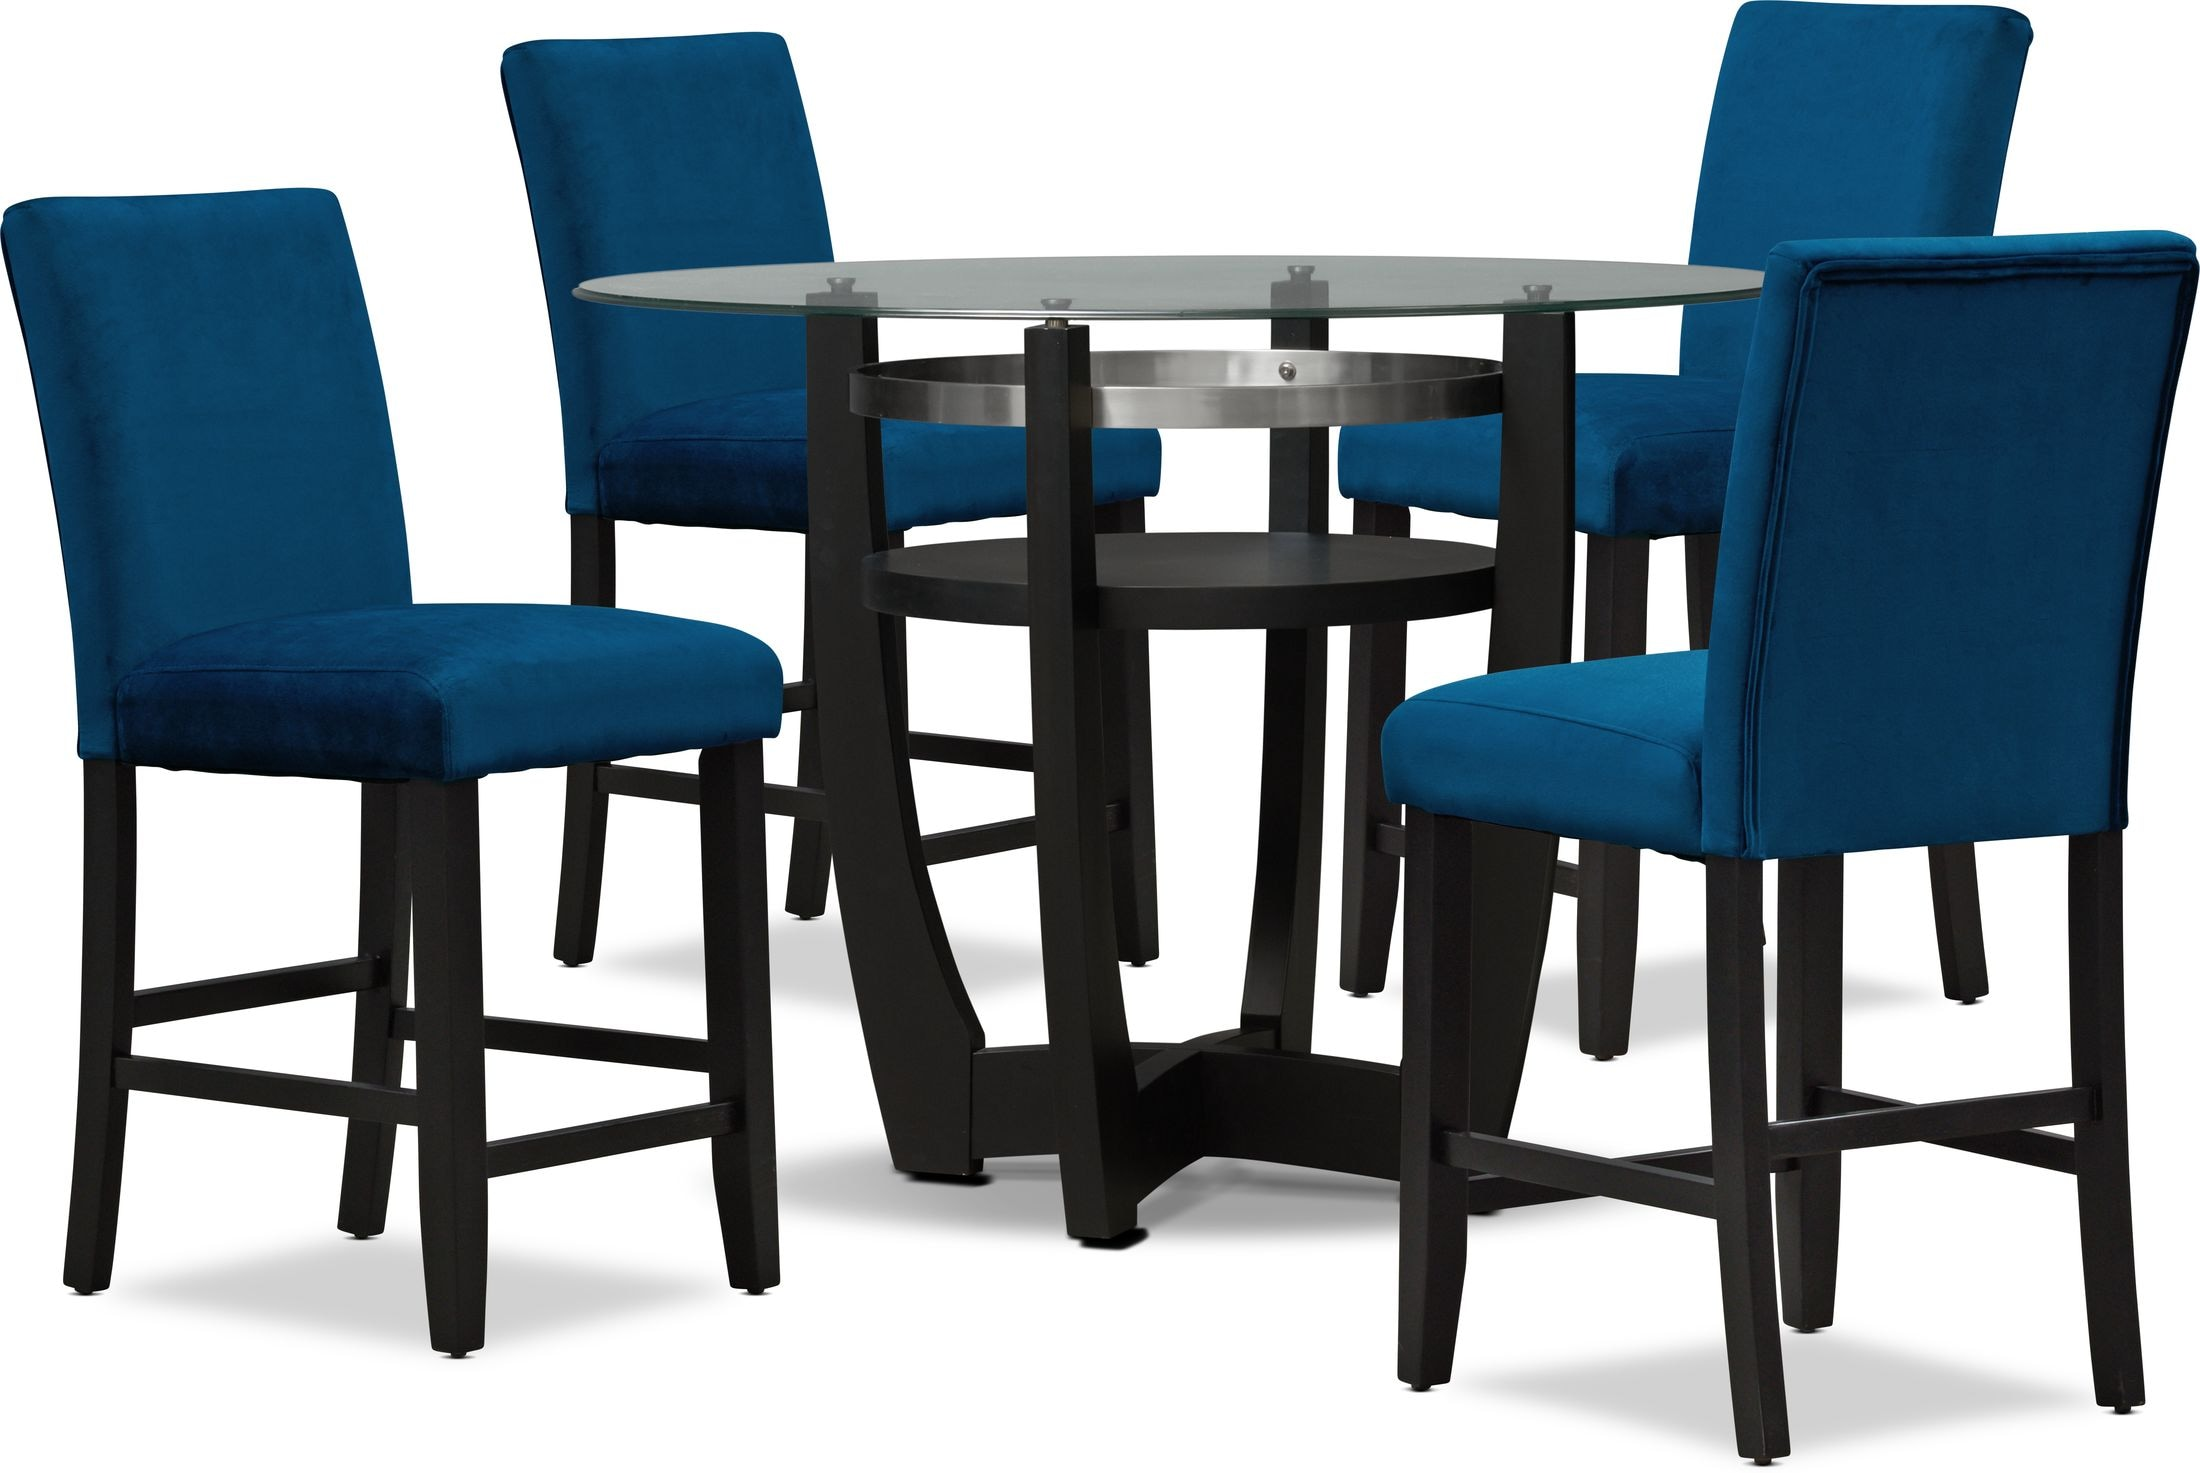 Dining Room Furniture - Lennox Counter-Height Dining Table and 4 Stools